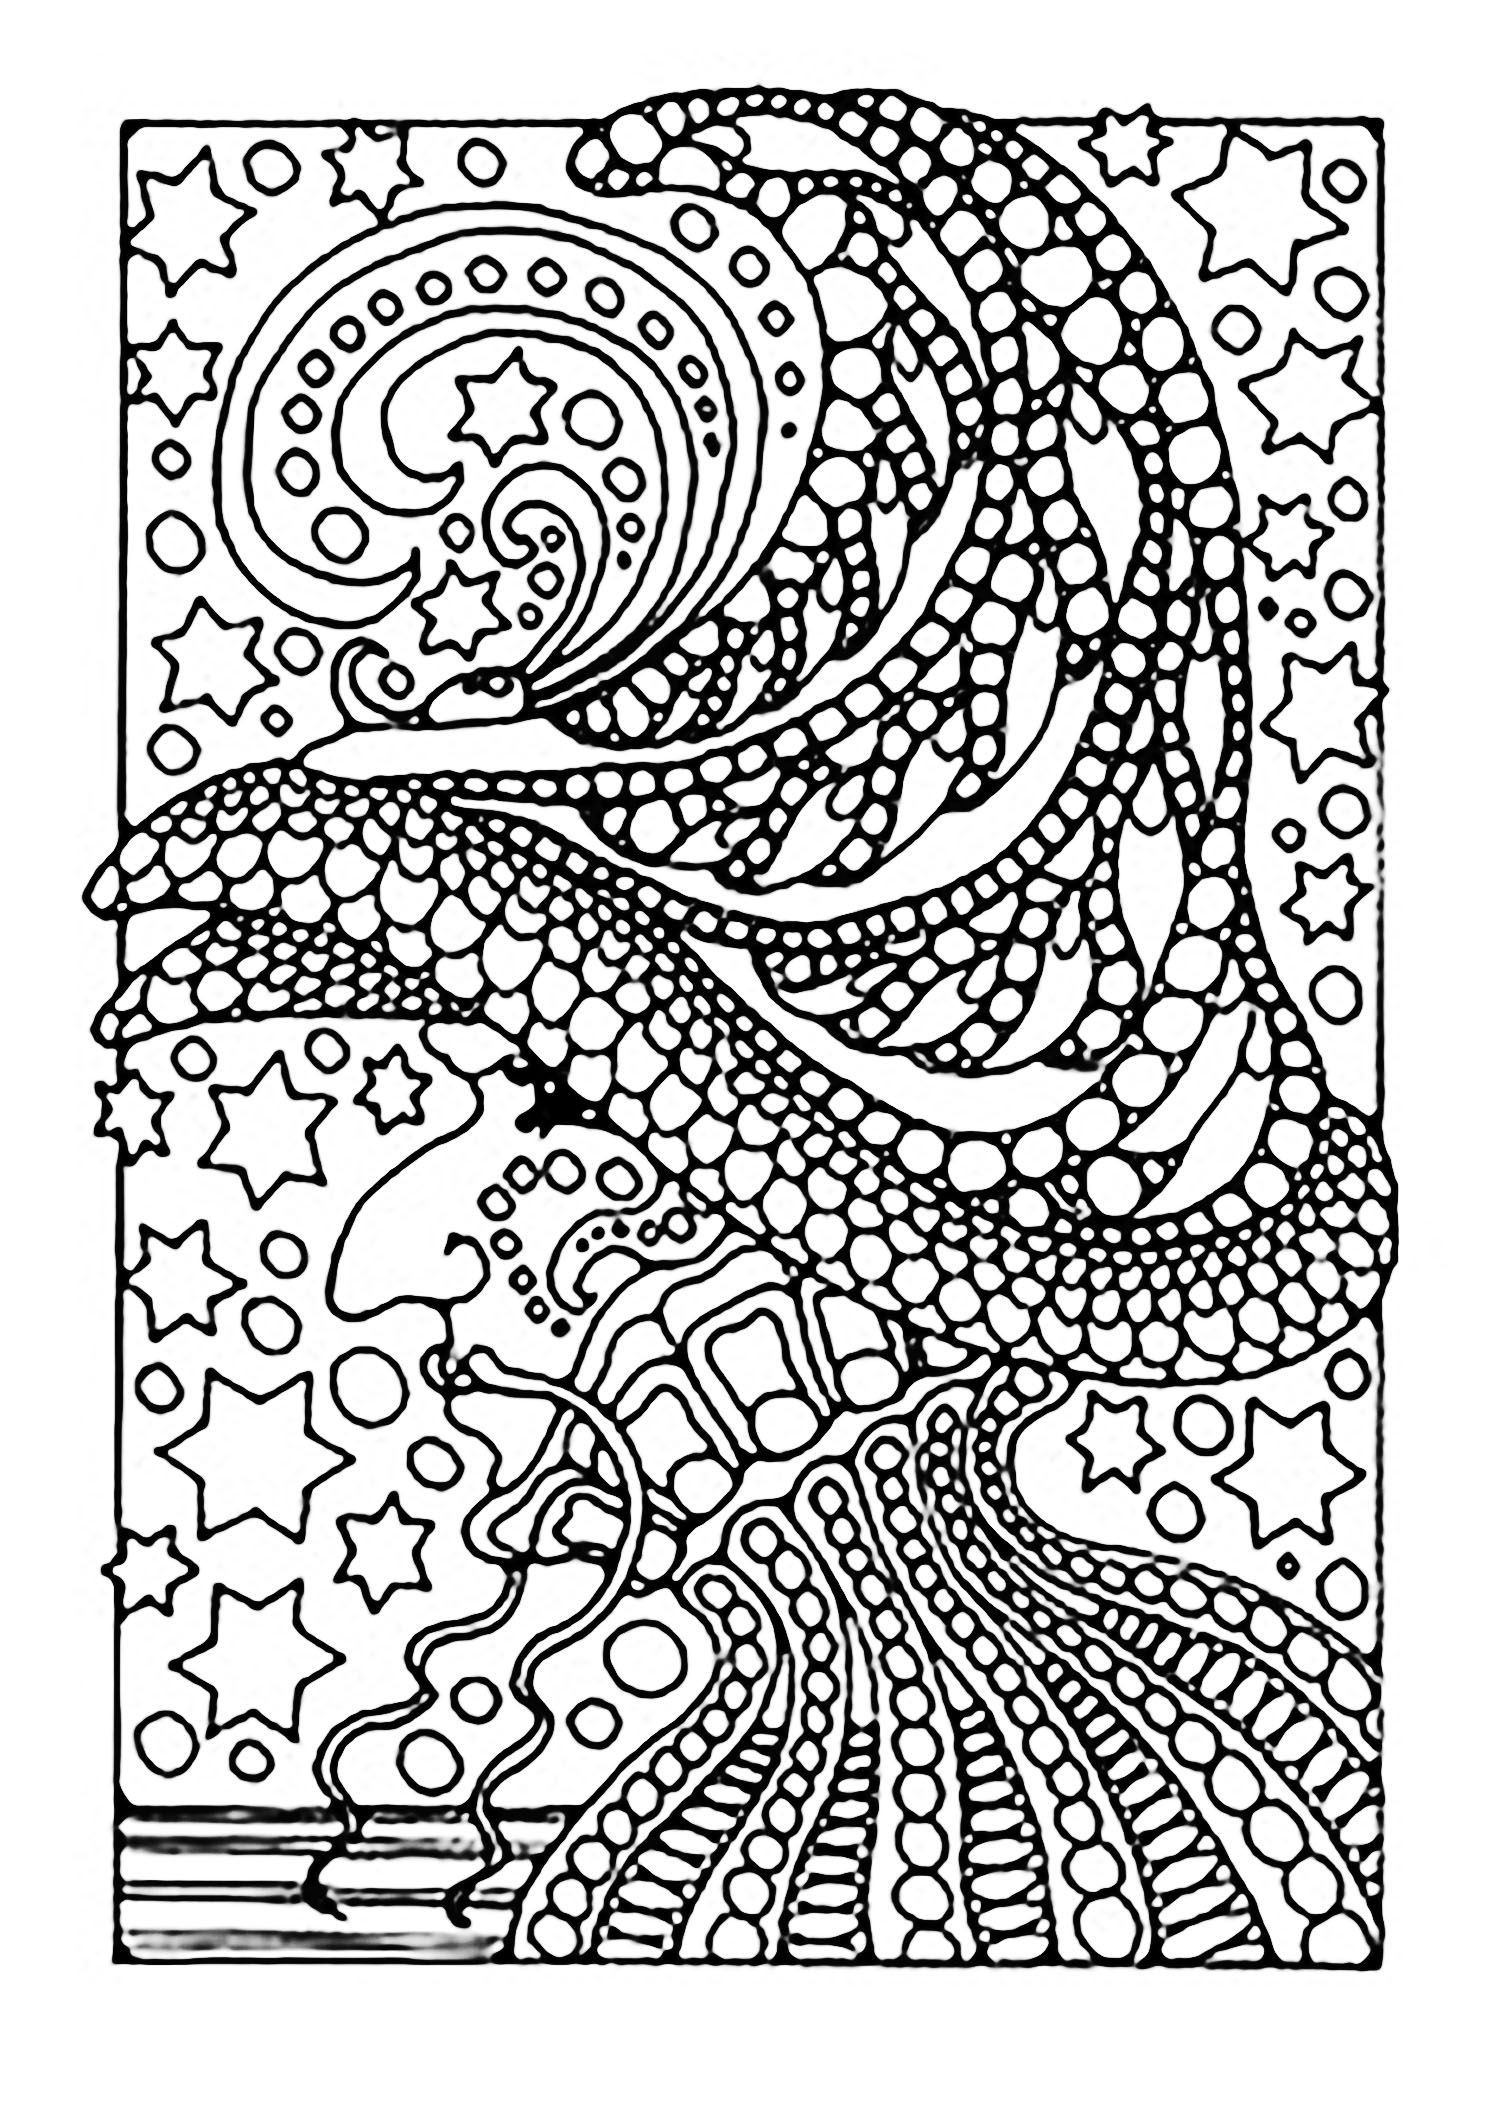 Coloring Pages Family  to Print 10i - To print for your project